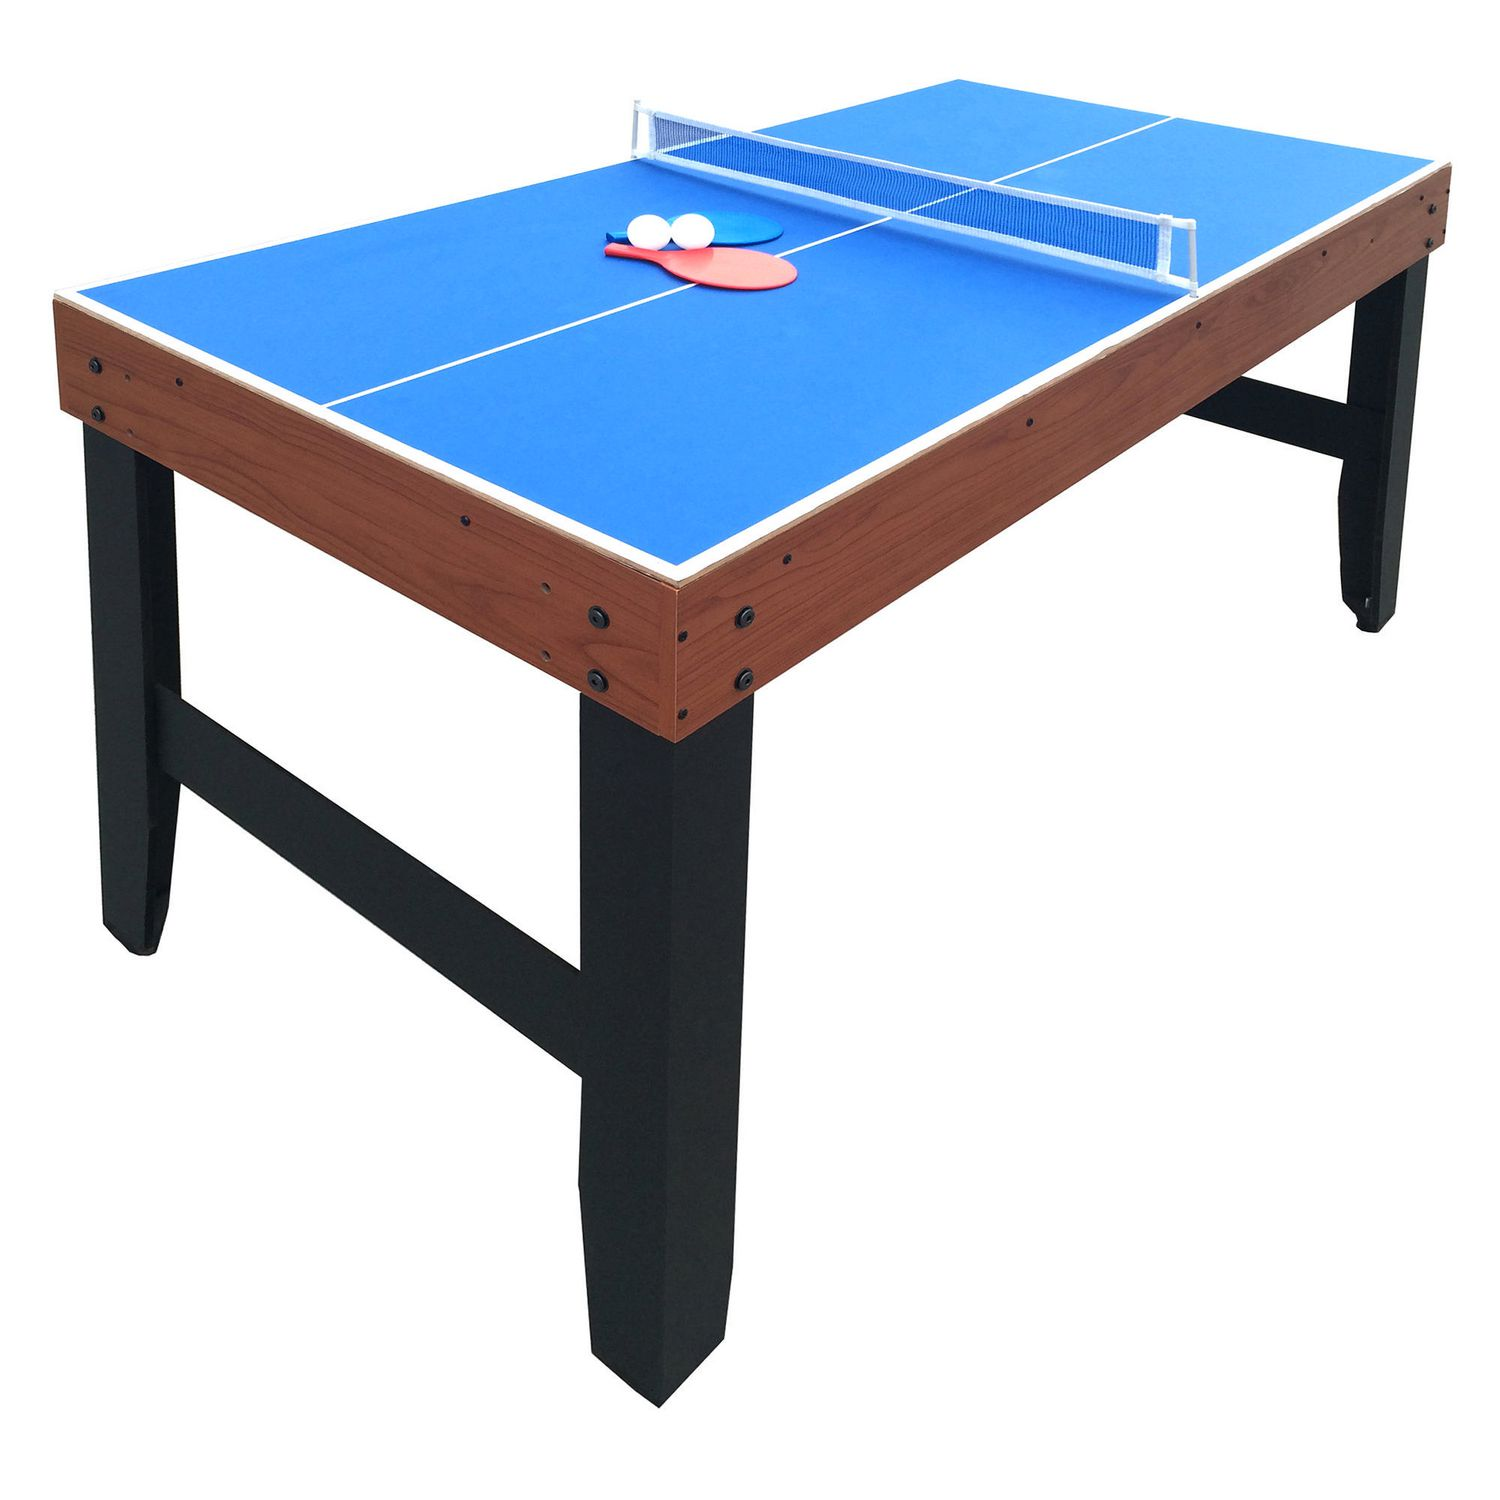 table liberty strikeworth products game pool multi uk games store air foot tables hockey